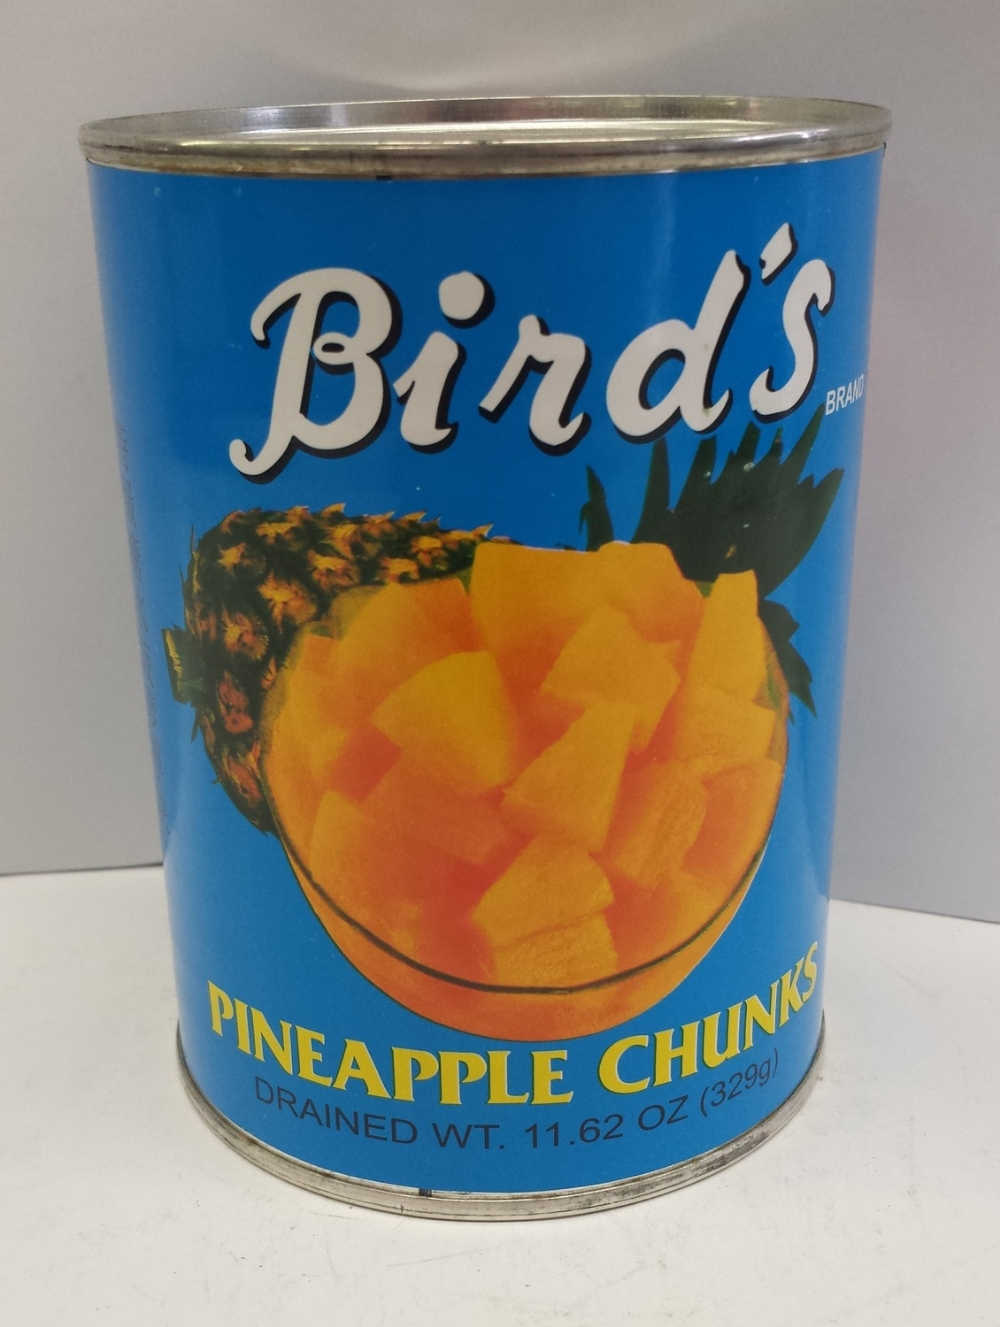 Pineapple Chunks    Bird's   FC16104 24x20 oz